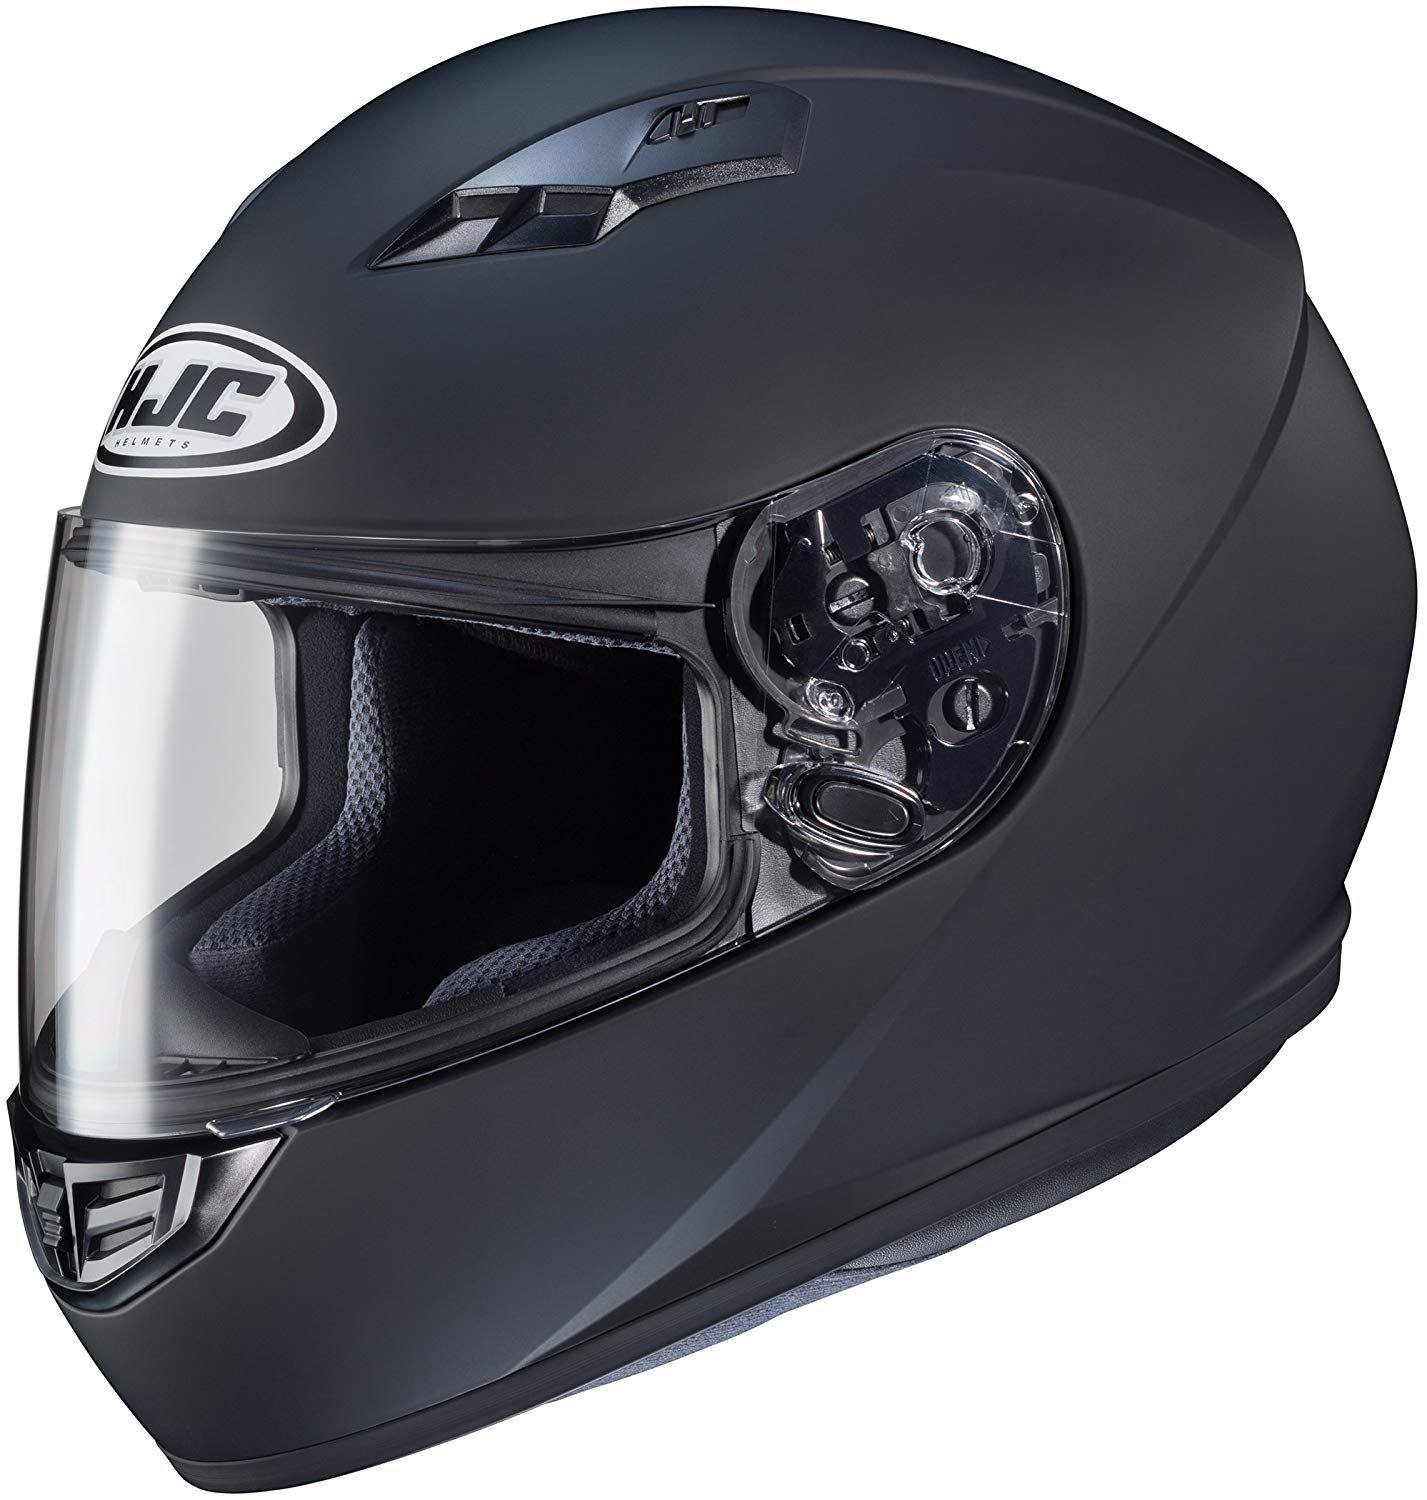 Hjc Helmets Cs R3 Unisex Adult Full Face Matte Motorcycle Helmet